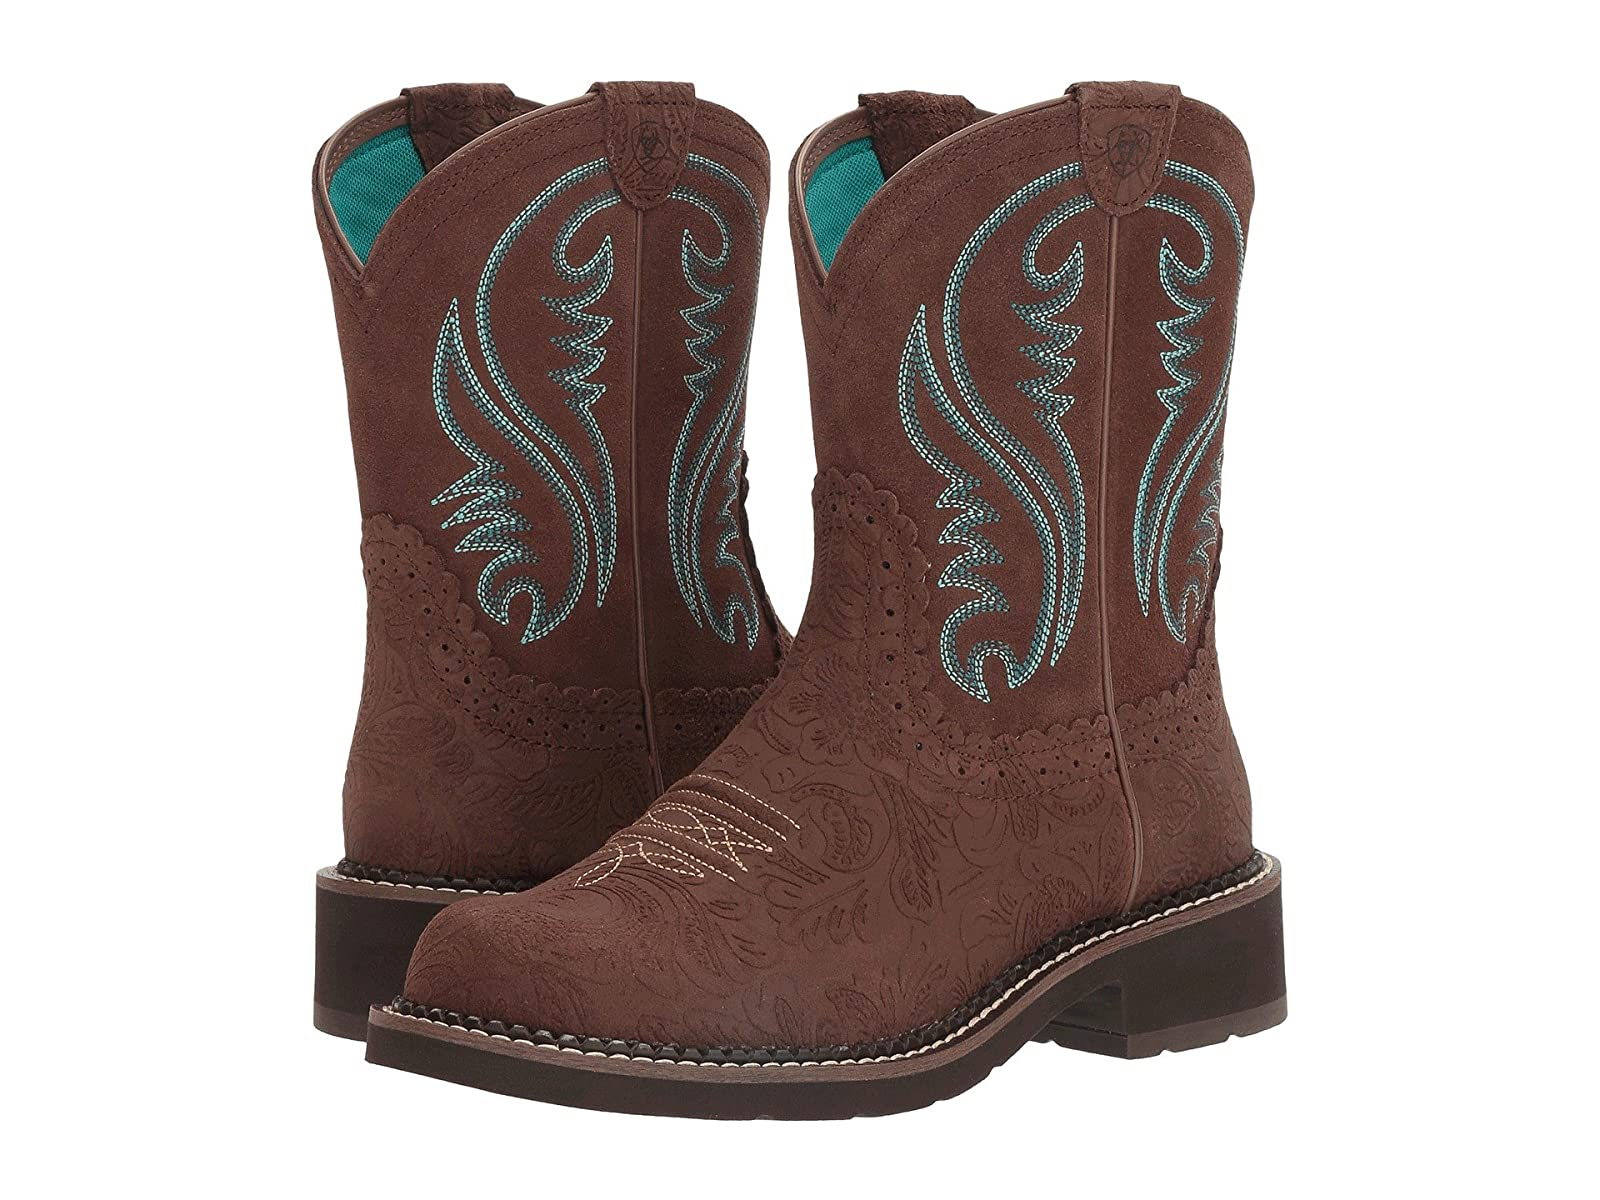 Ariat Fatbaby HeritageSelling fashionable and eye-catching shoes